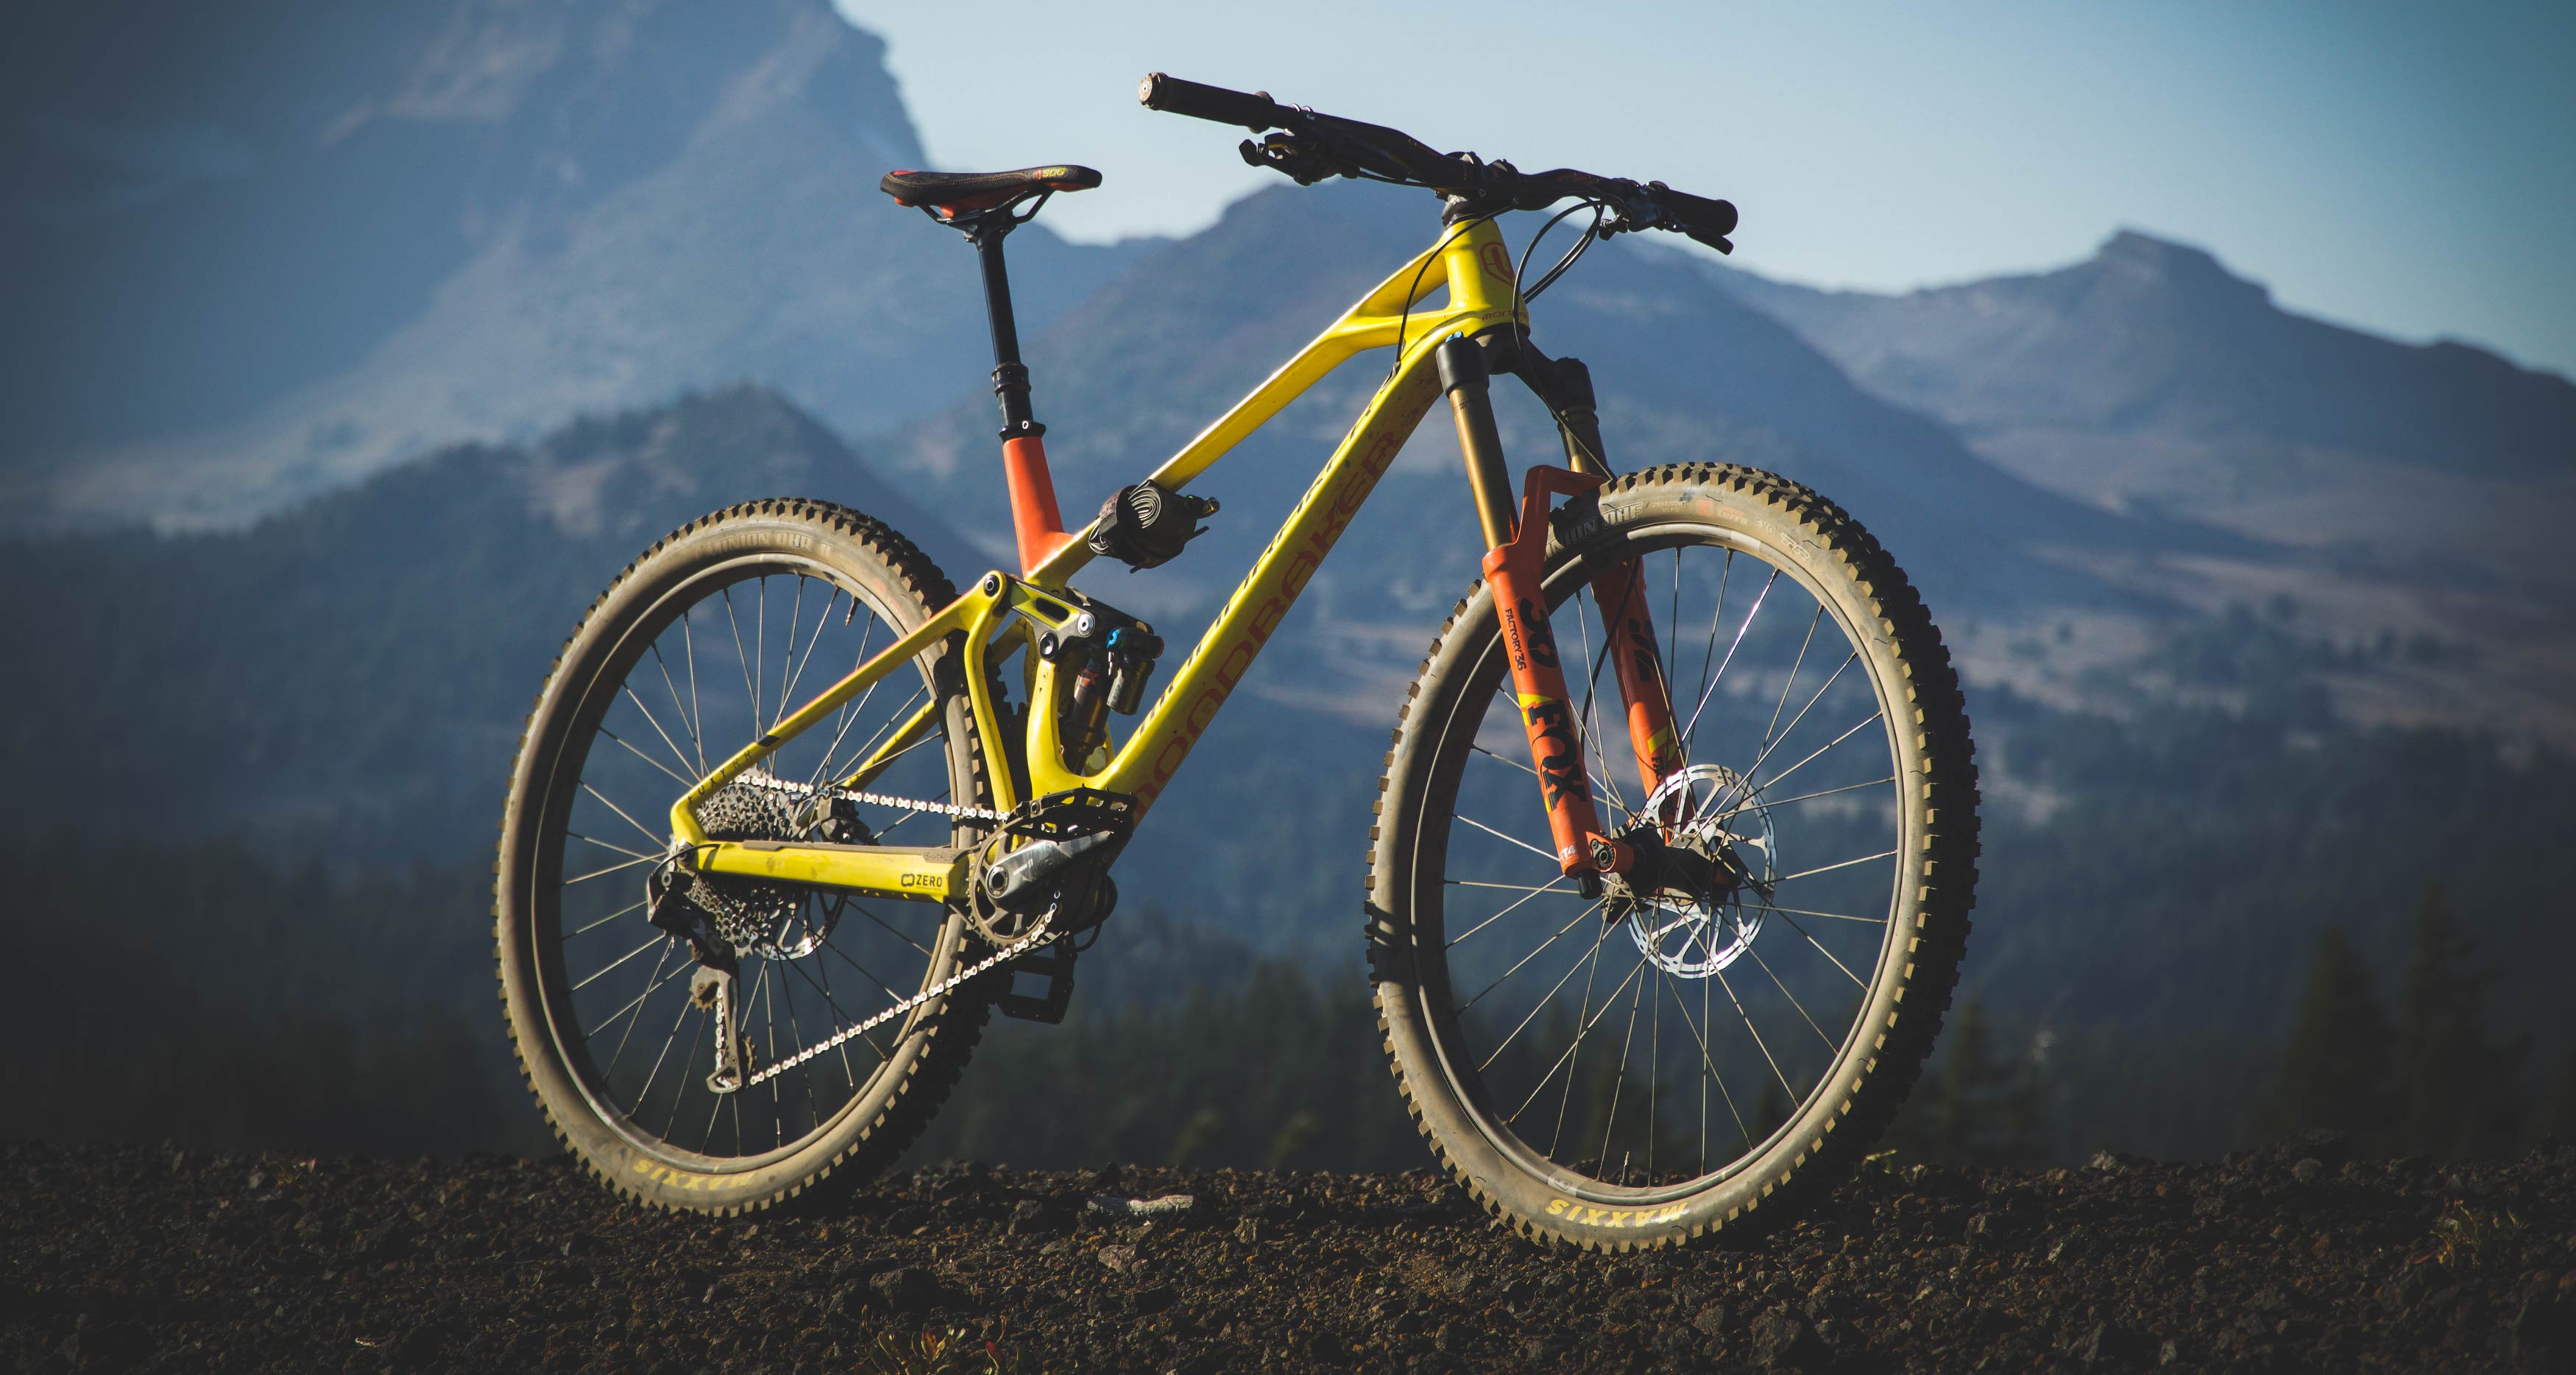 Mondraker's Foxy RR 29 is a very specified high performance bike